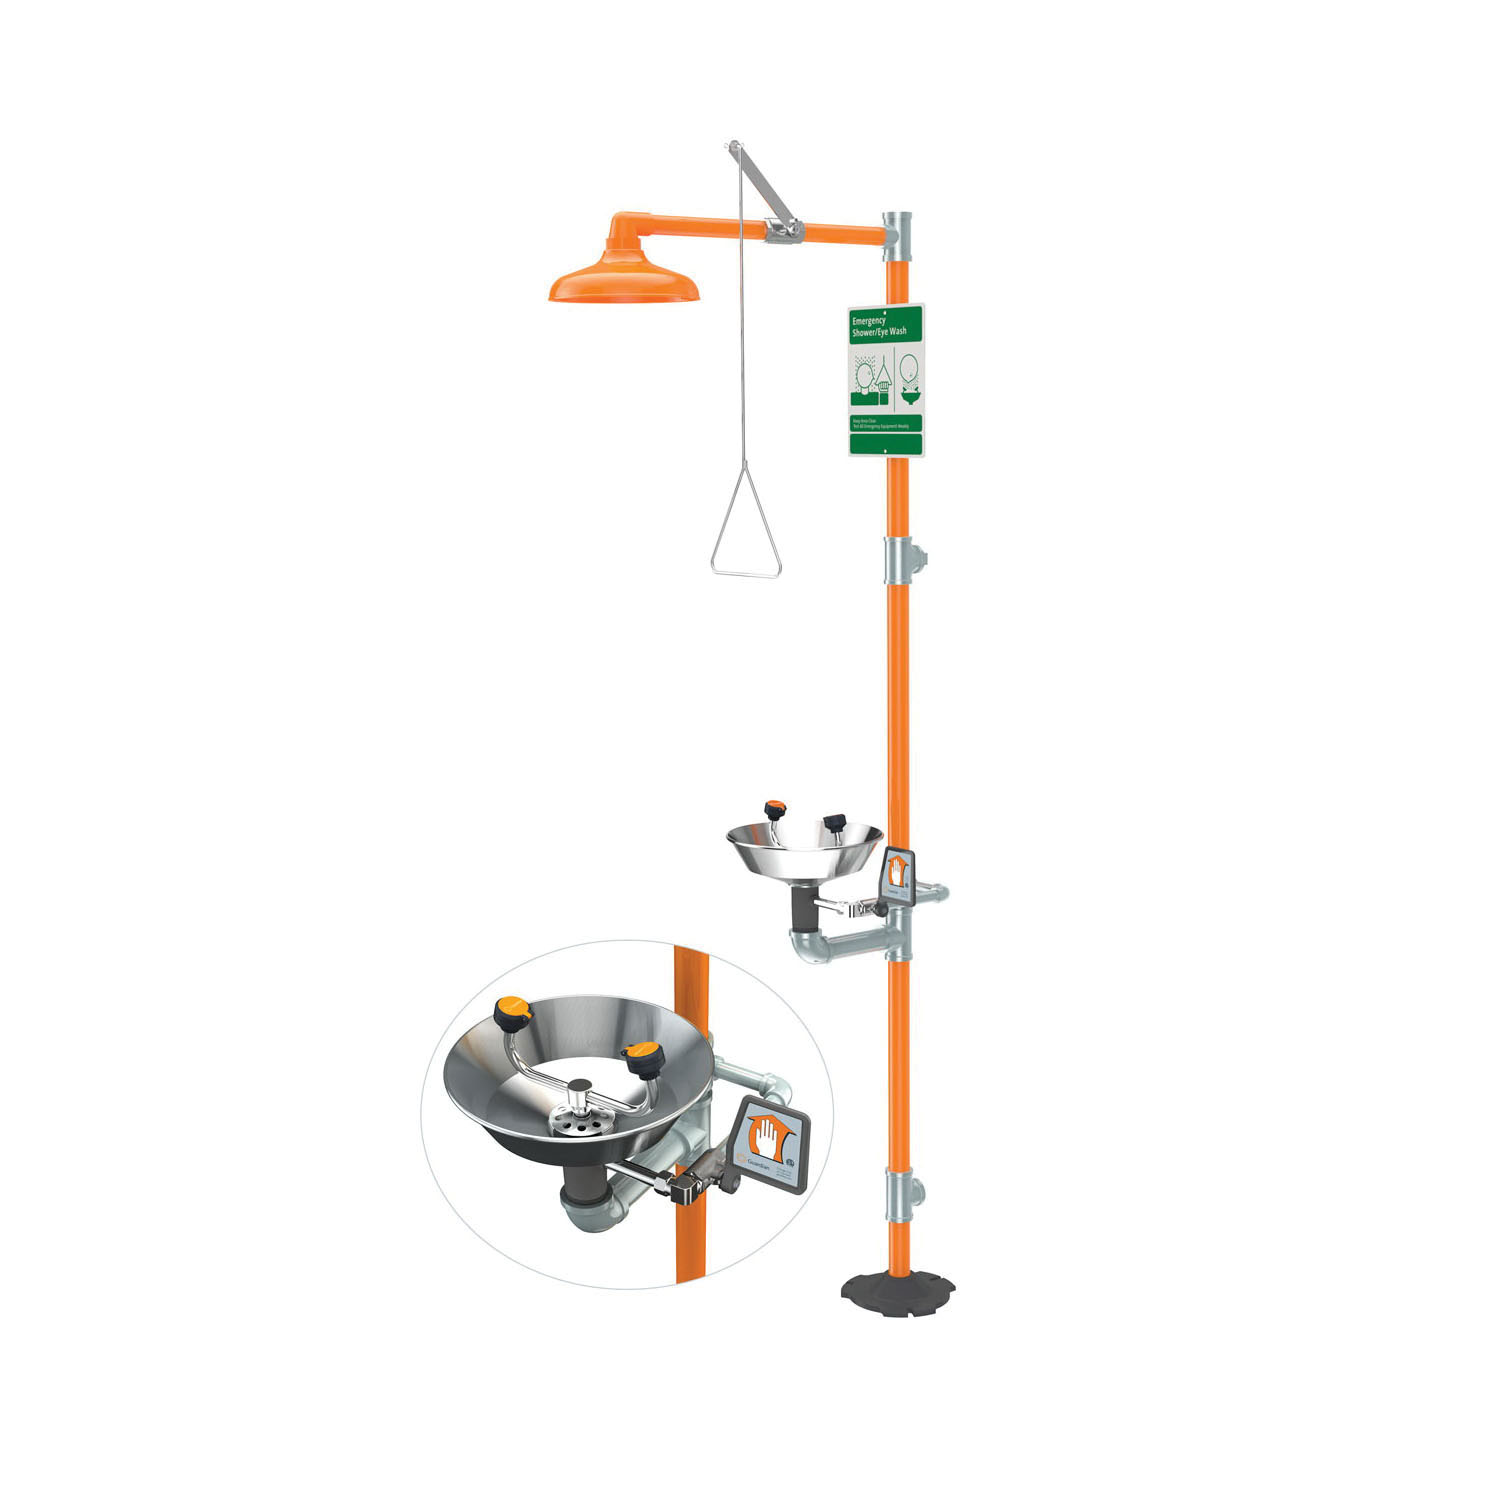 Guardian G1902 Combination Eyewash and Shower Safety Unit, Stainless Steel Eyewash Bowl, ABS Plastic Shower Head, Floor Mounting, Pull Rod Handle Operation, Specifications Met: ANSI Z358.1-2014, cUPC 8116